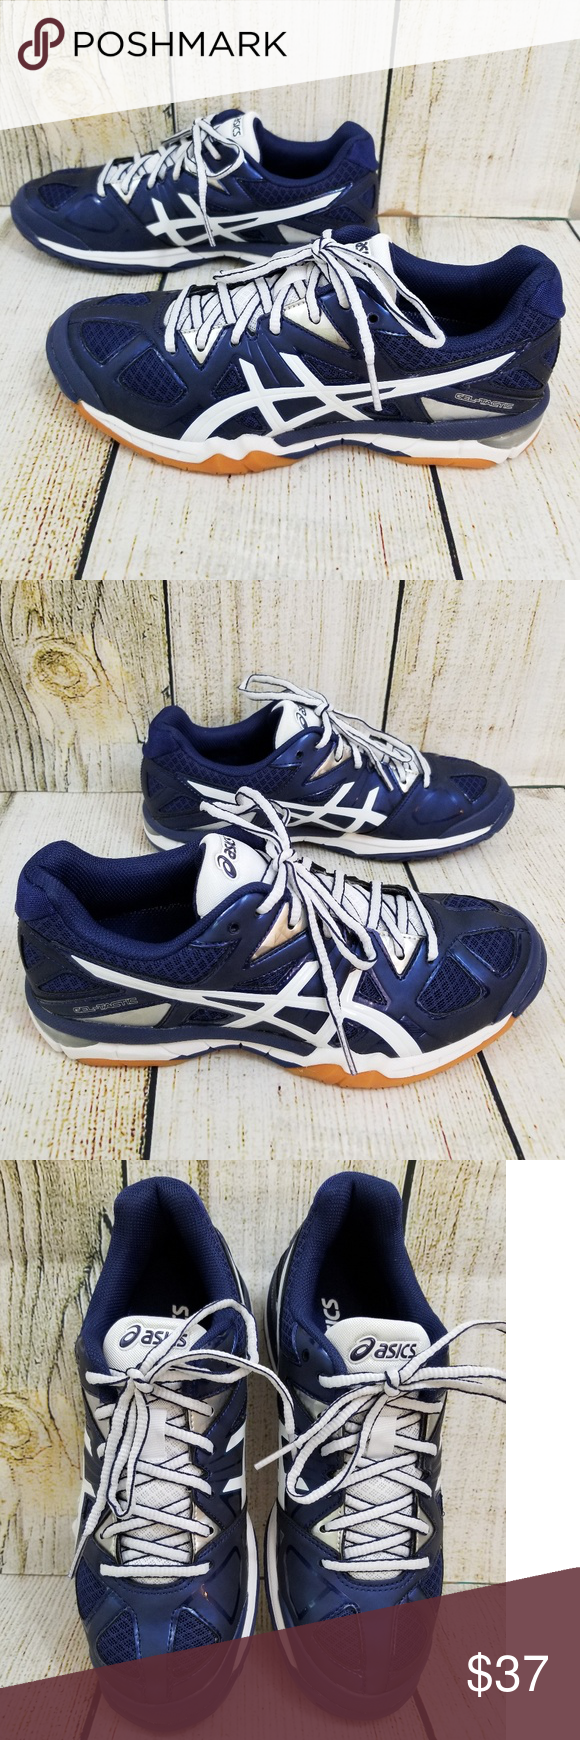 Sold Volleyball Shoes Asics Women Asics Shoes